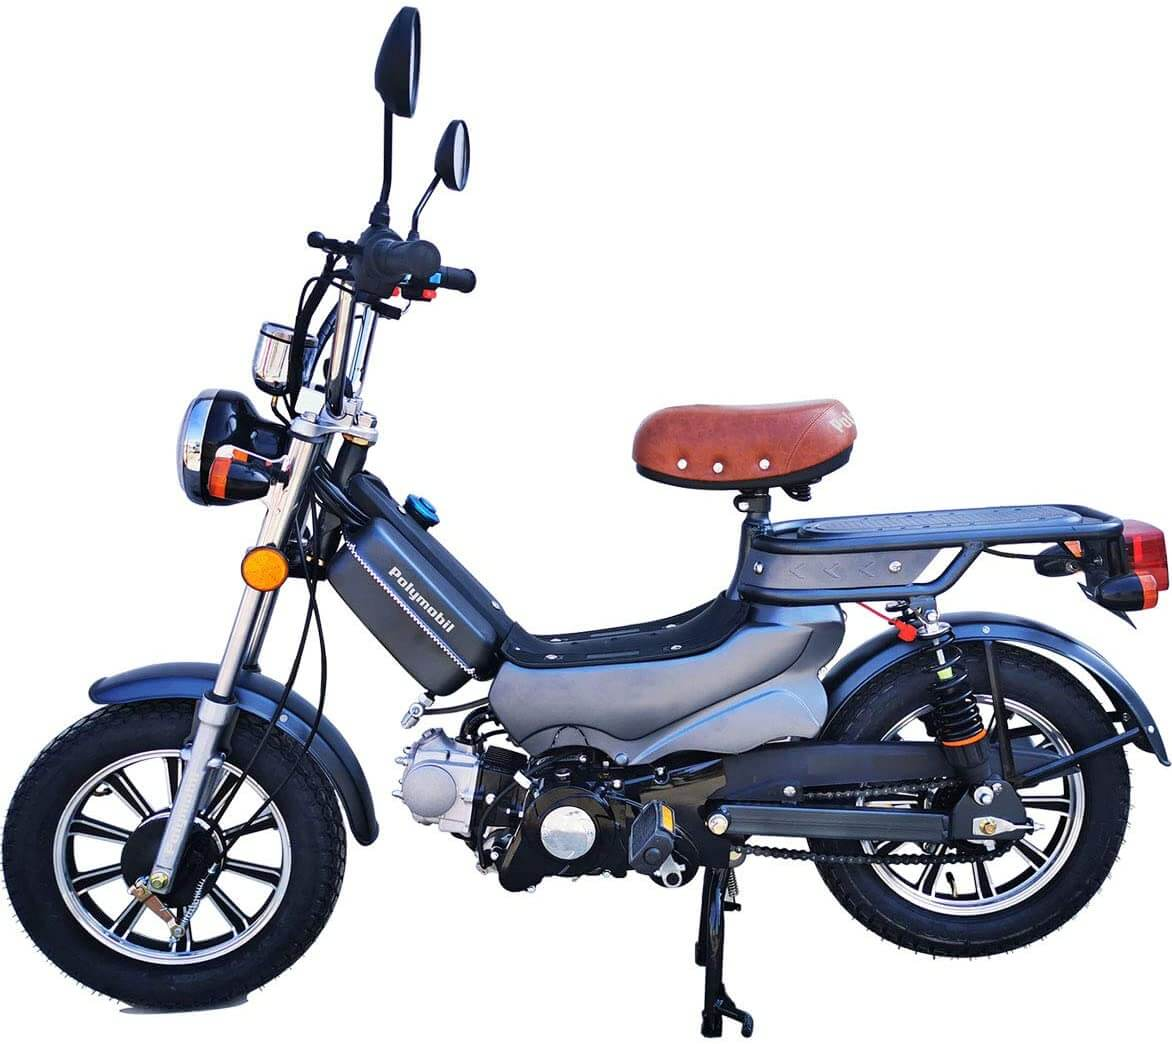 Cheap Gas Mopeds for Sale under $300 for Adults – Where to Find Good Used Ones